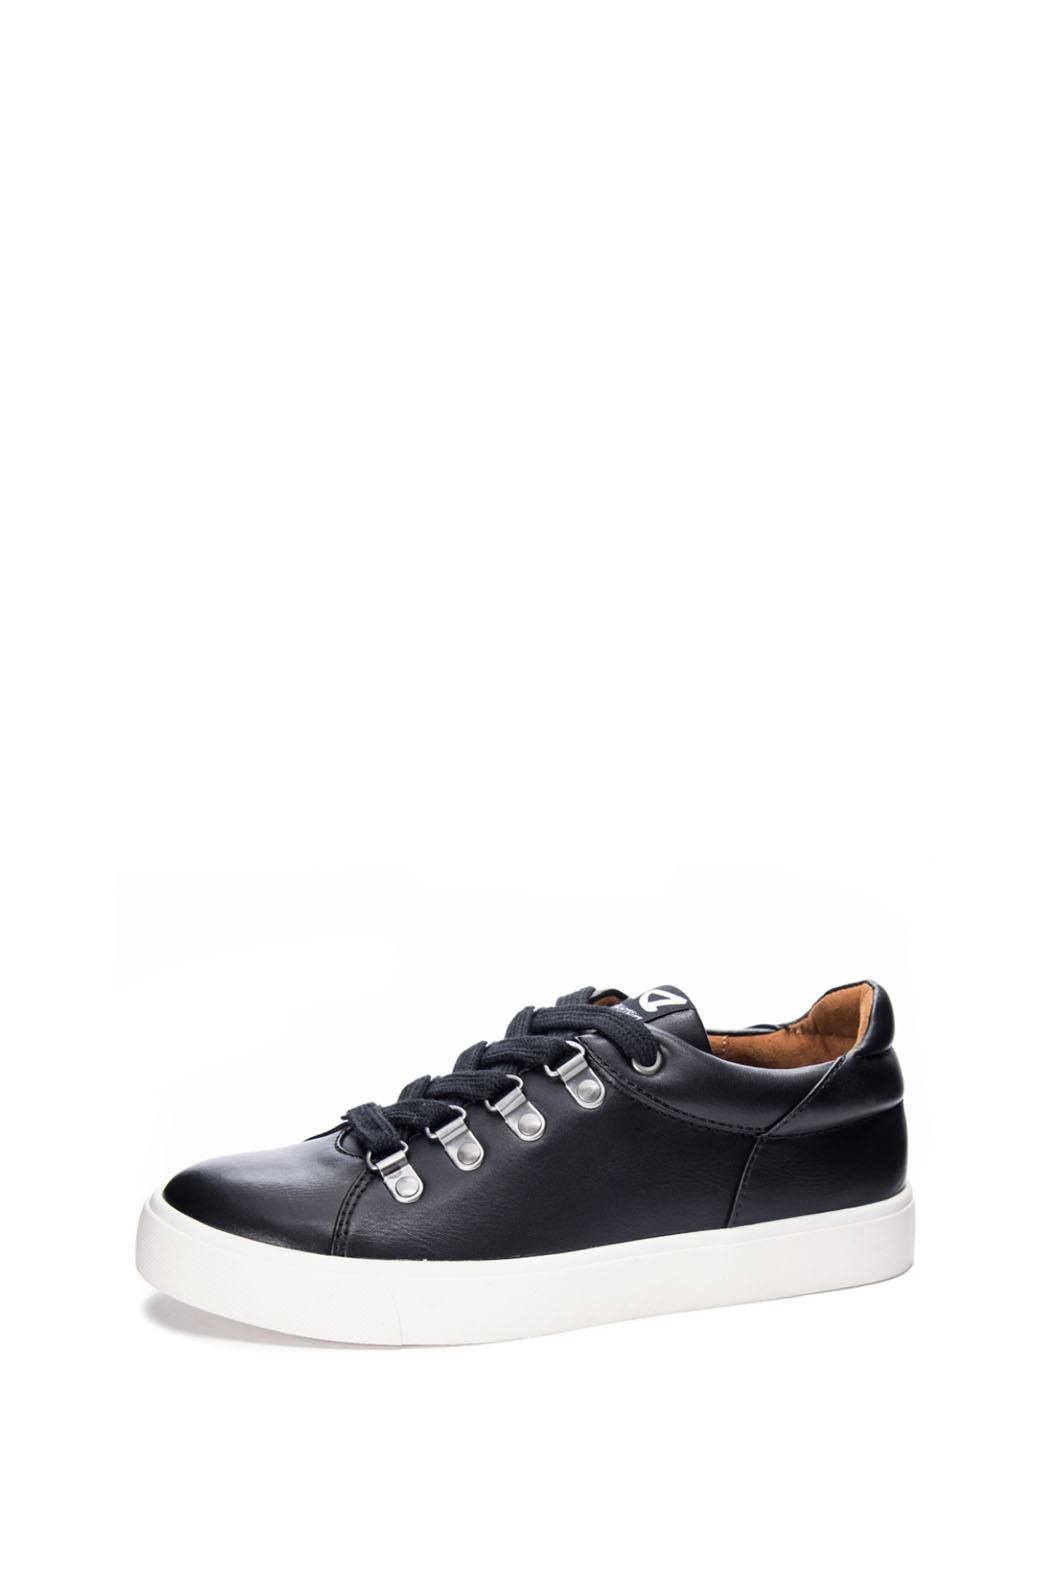 Dirty Laundry Elle Leather Sneaker - Front Full Image